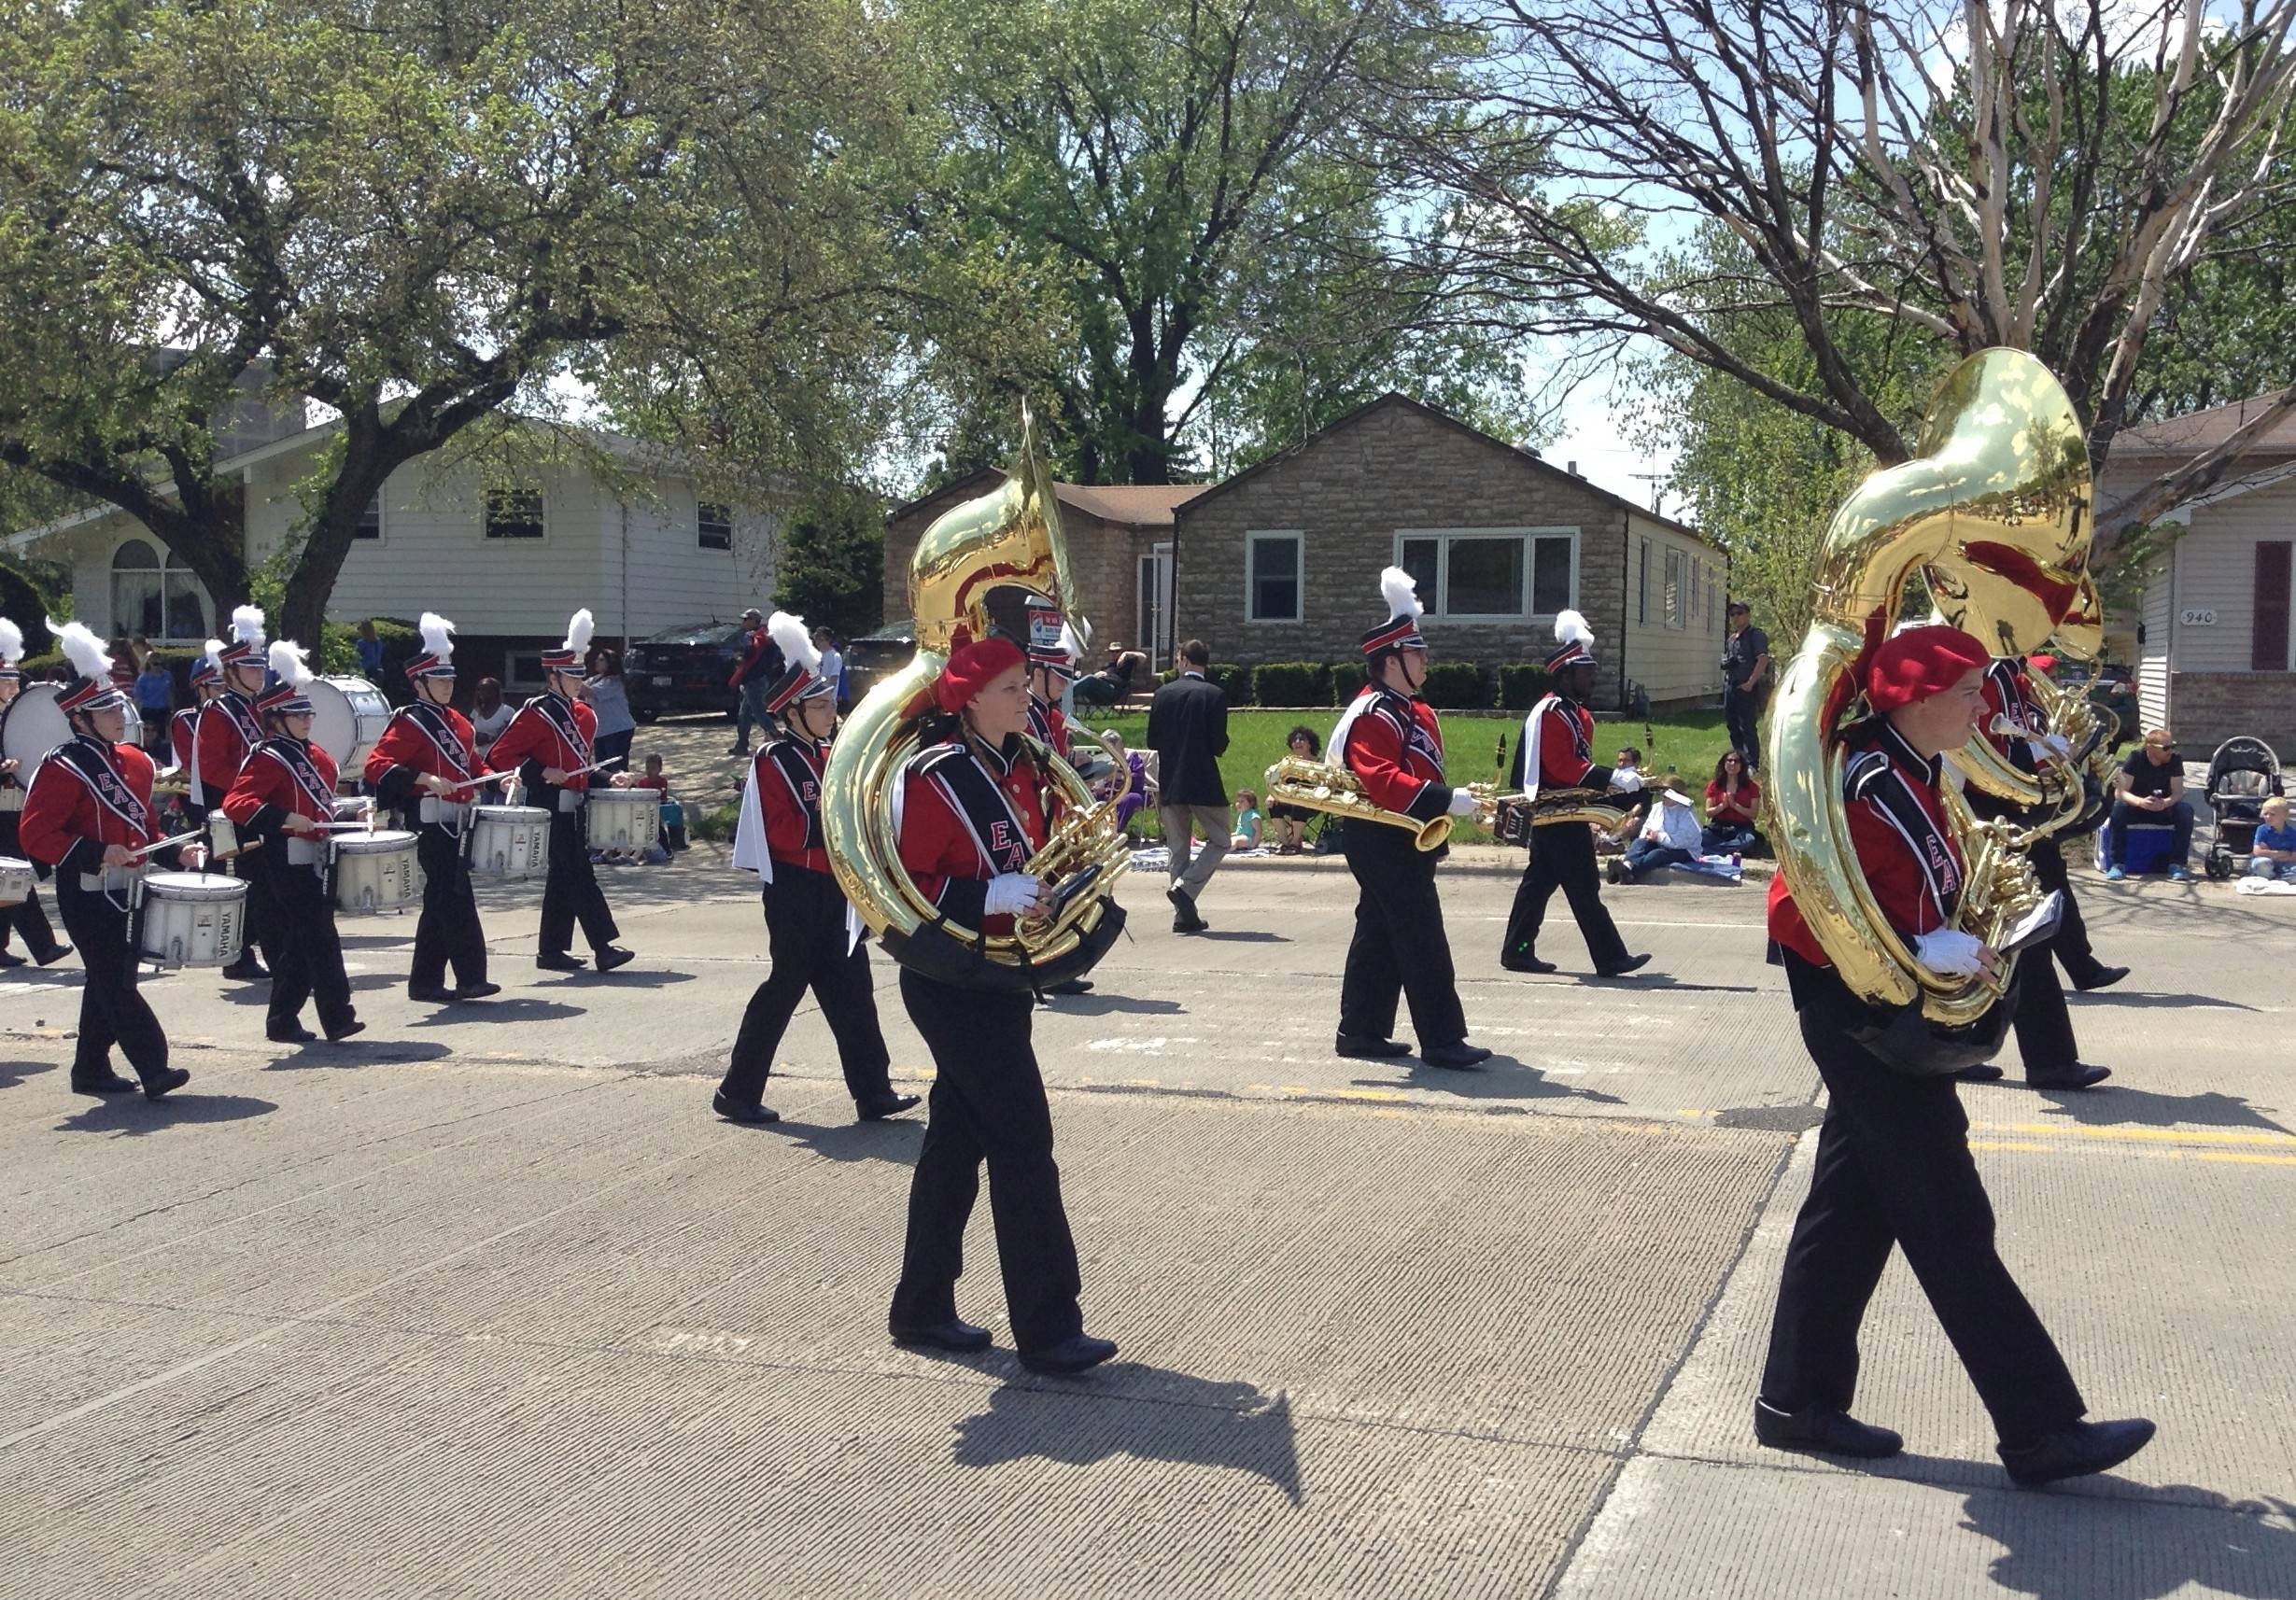 The Glenbard East High School marching band helped energize the crowd during Sunday's Lilac Parade in Lombard. Gorgeous spring weather greeted parade spectators eager to enjoy the outdoors after an unpleasant start to the weekend.